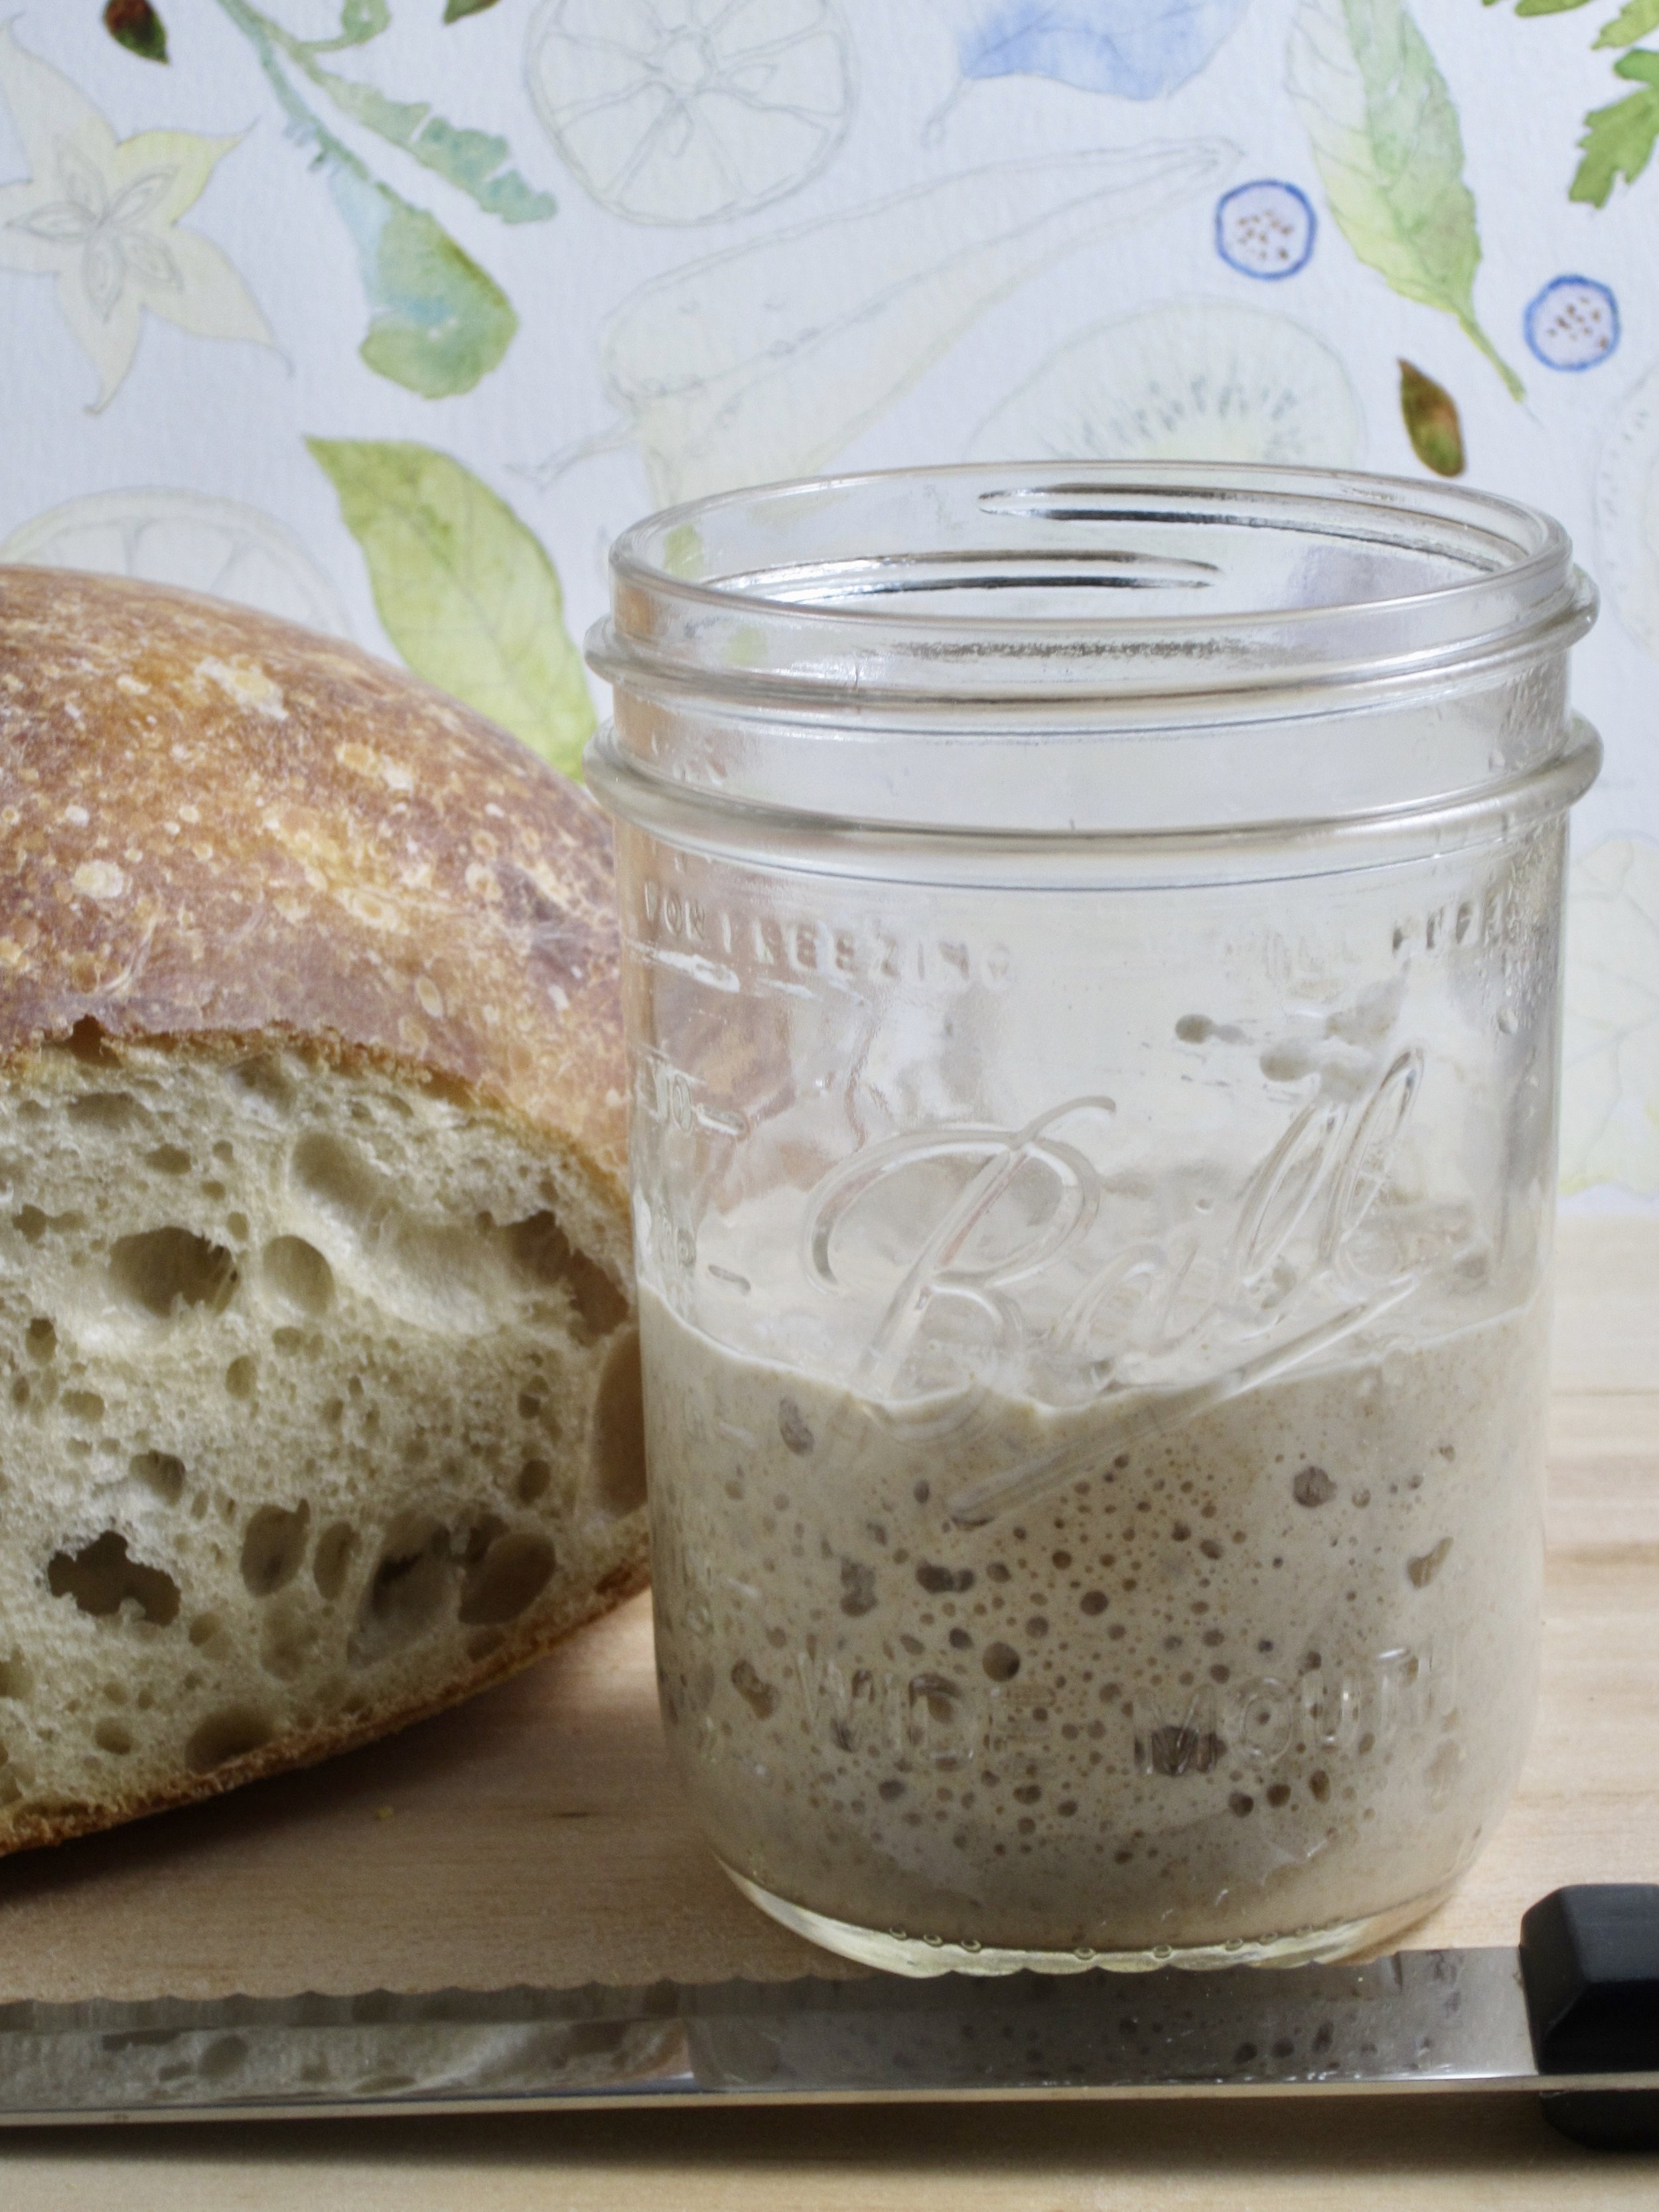 My own recent attempts at making sourdough bread at home involves a small amount of rye flour. Rye flour contains lots of the wild yeasts and lactic acid forming bacteria needed to establish a vigorous sourdough starter.